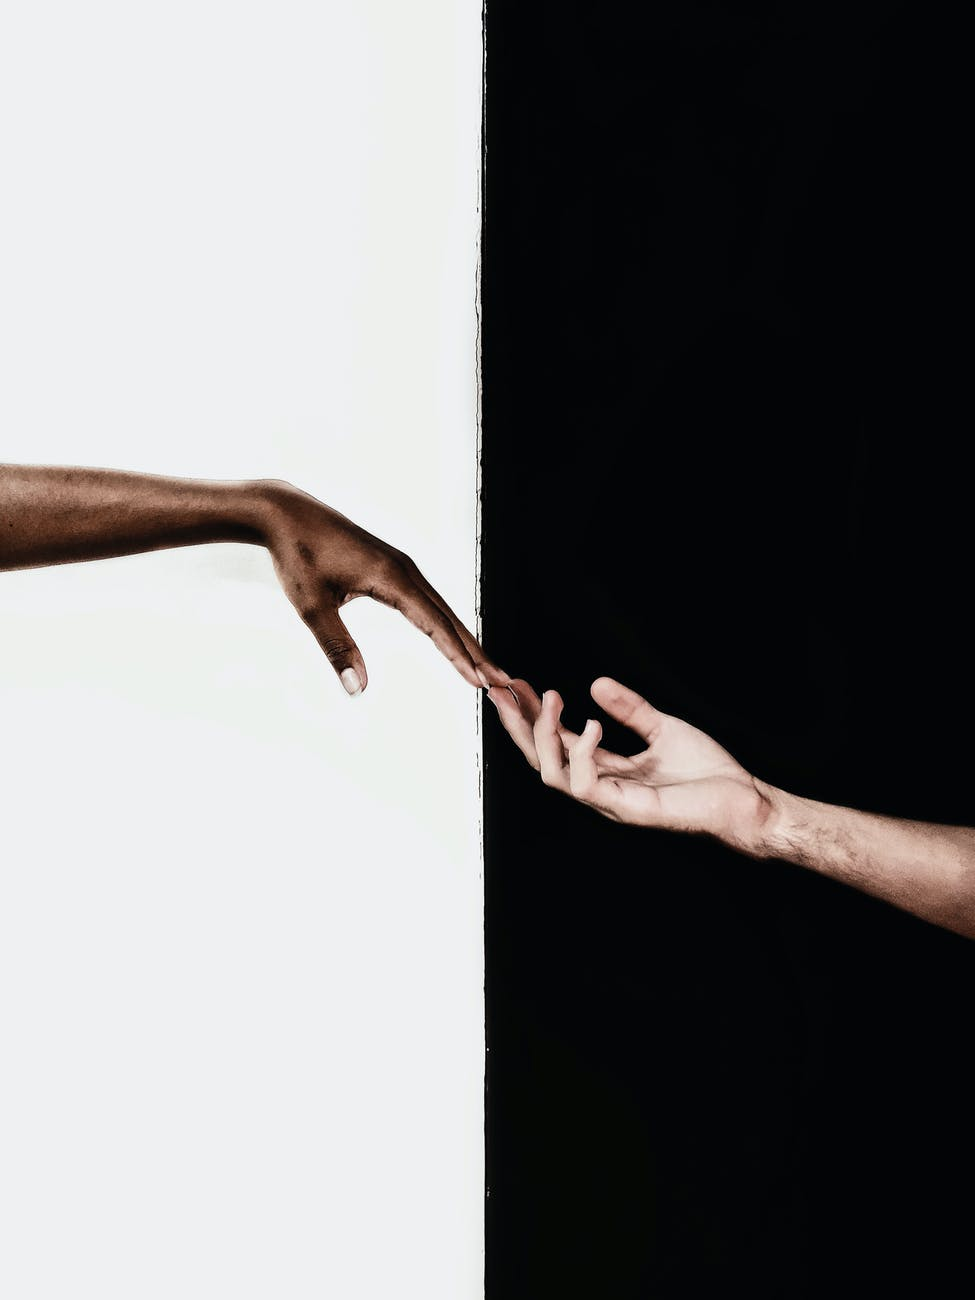 hands in front of white and black background